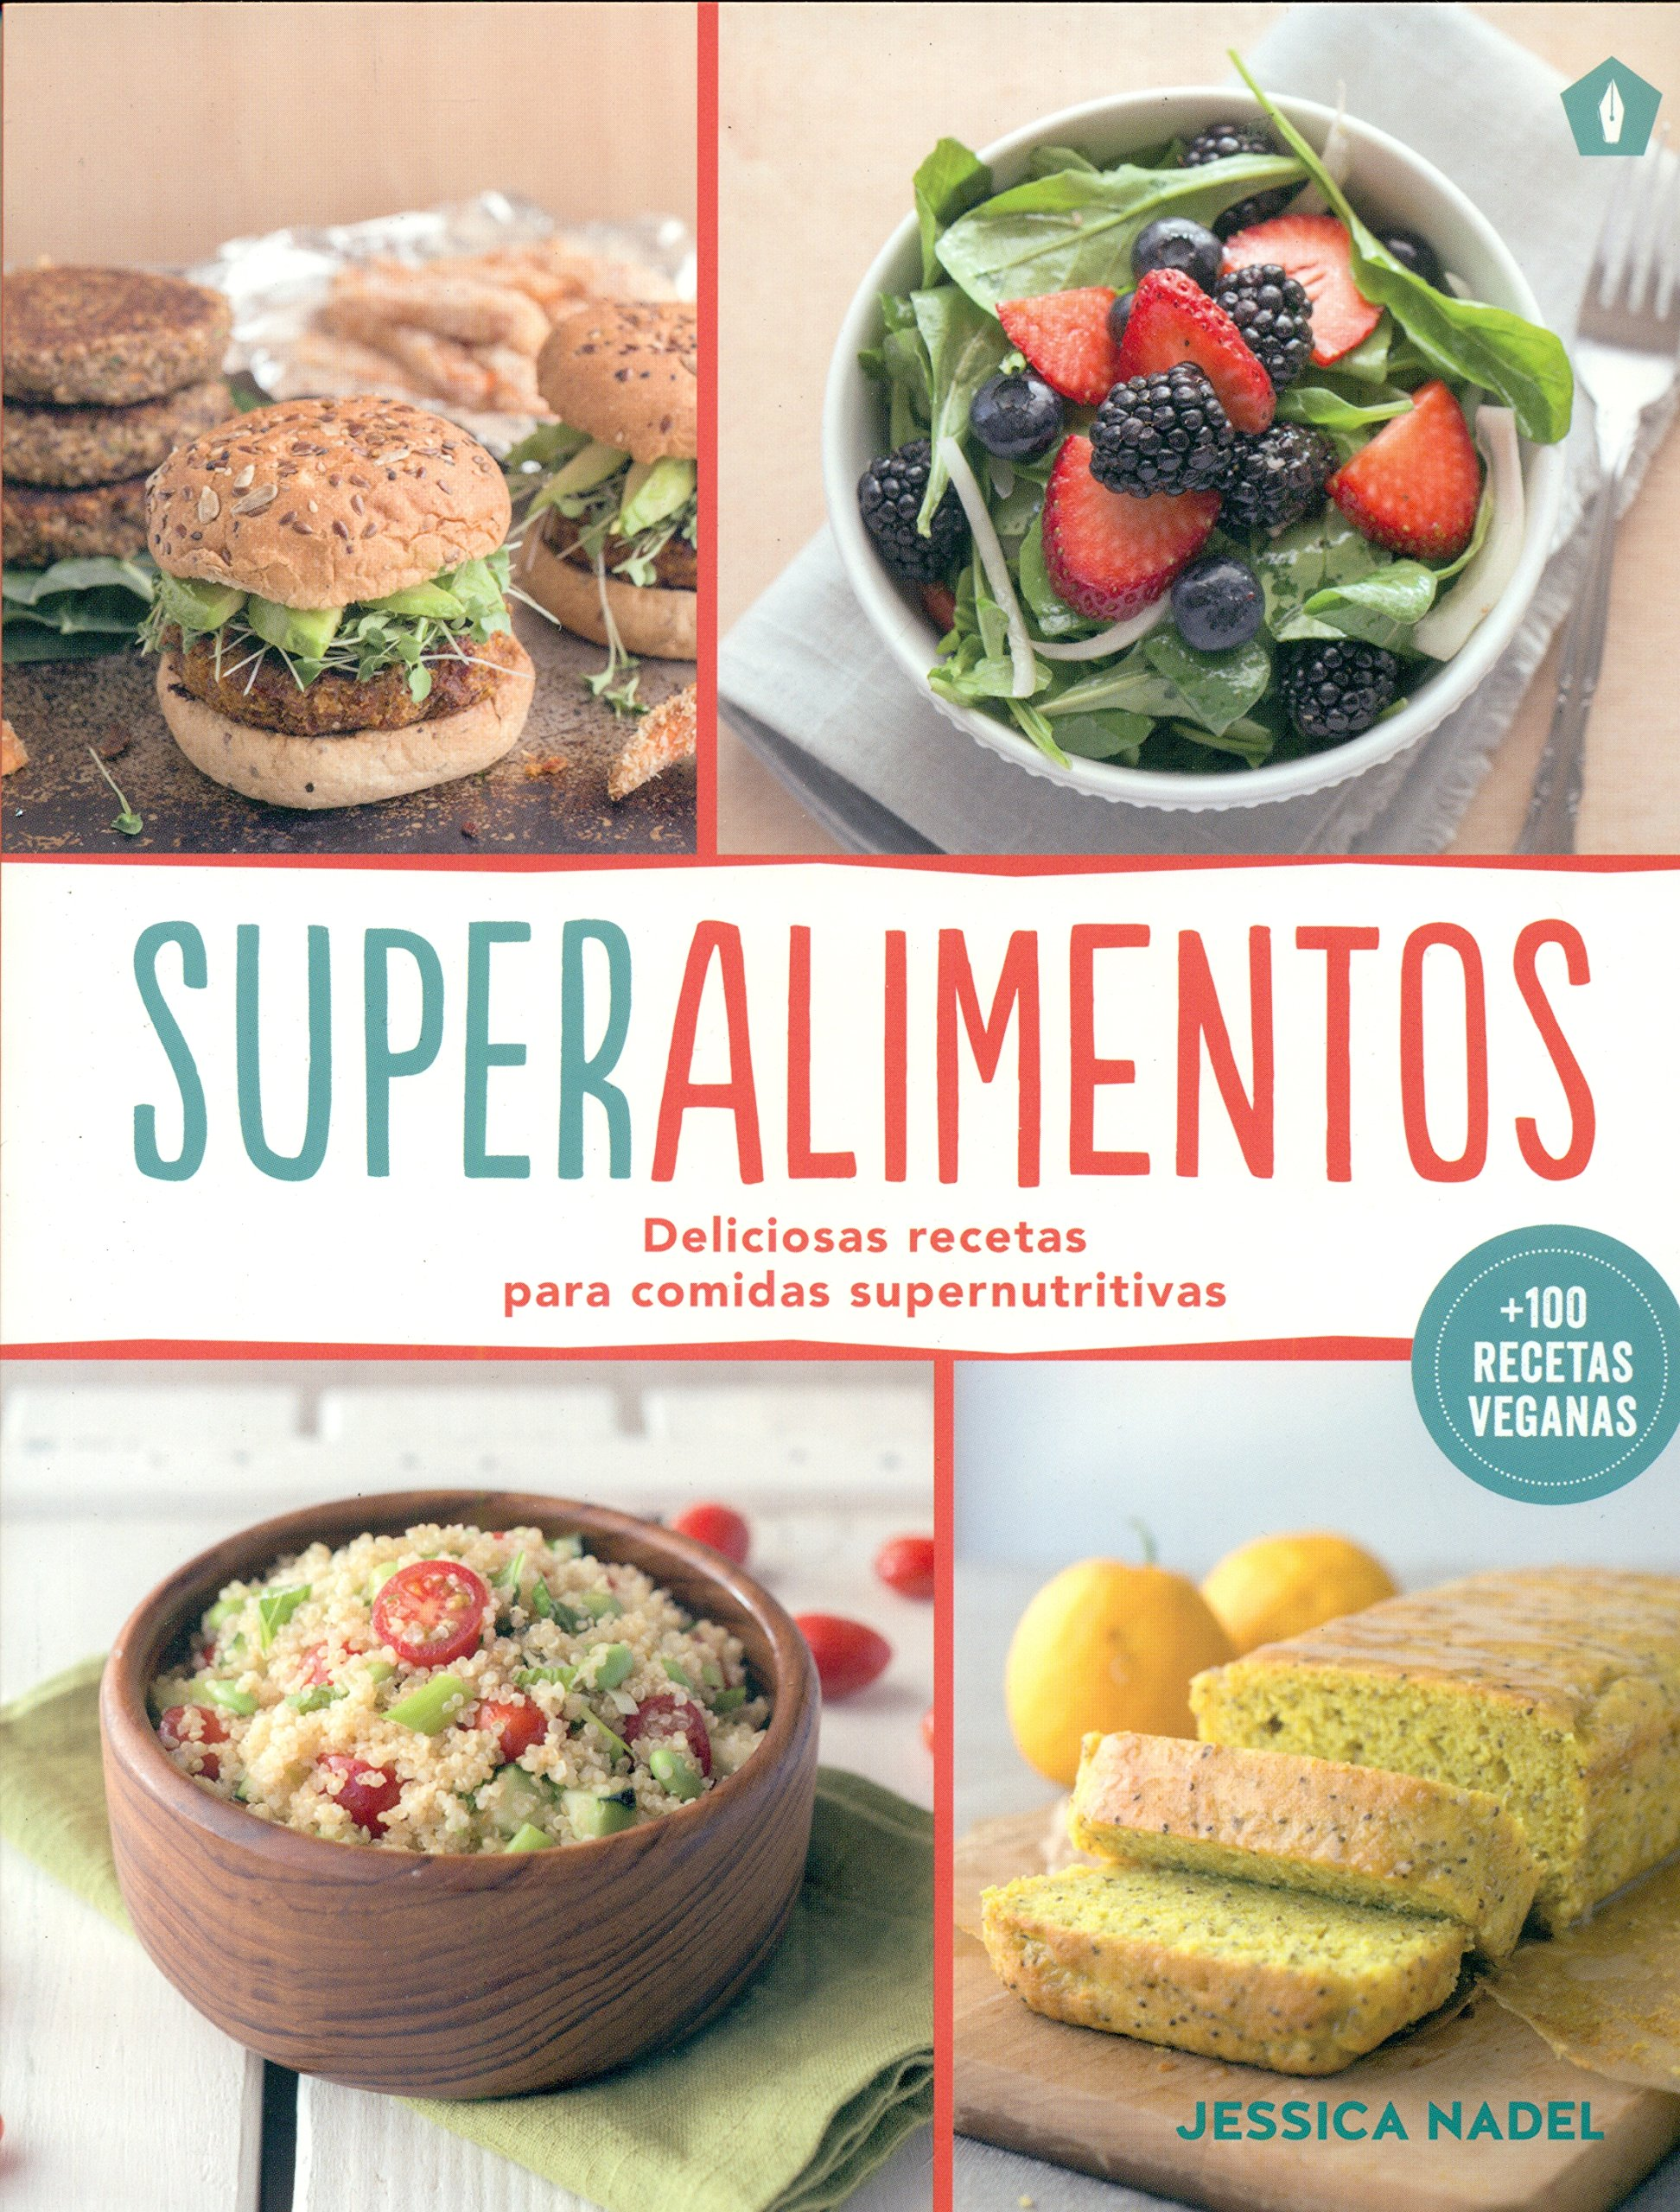 Superalimentos (Spanish Edition): Jessica Nadel: 9788416407163: Amazon.com: Books